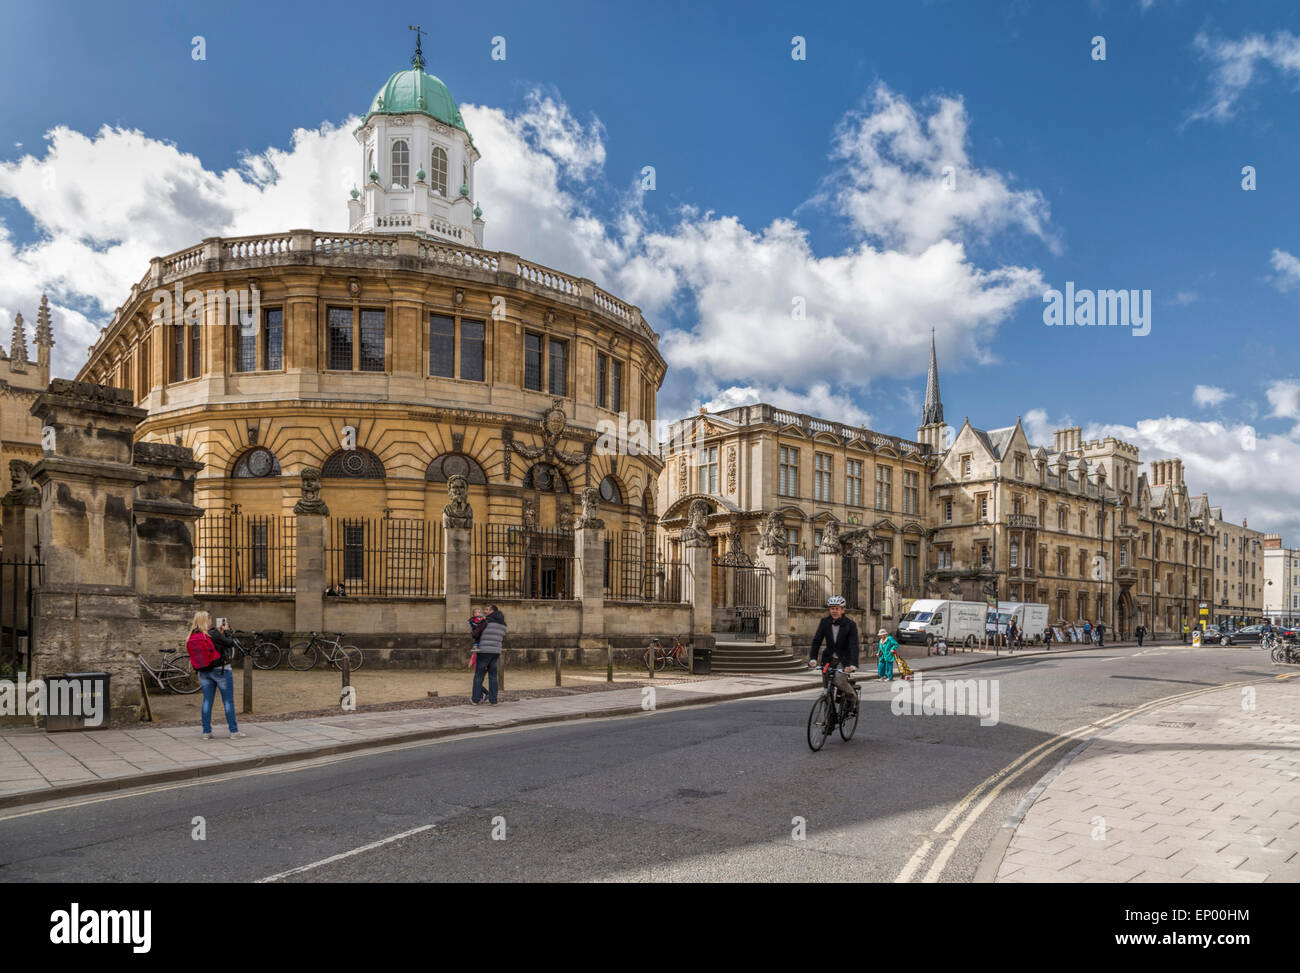 View from Broad Street on the Sheldonian Theatre, designed by Christopher Wren, in Oxford, England, Oxfordshire, Stock Photo